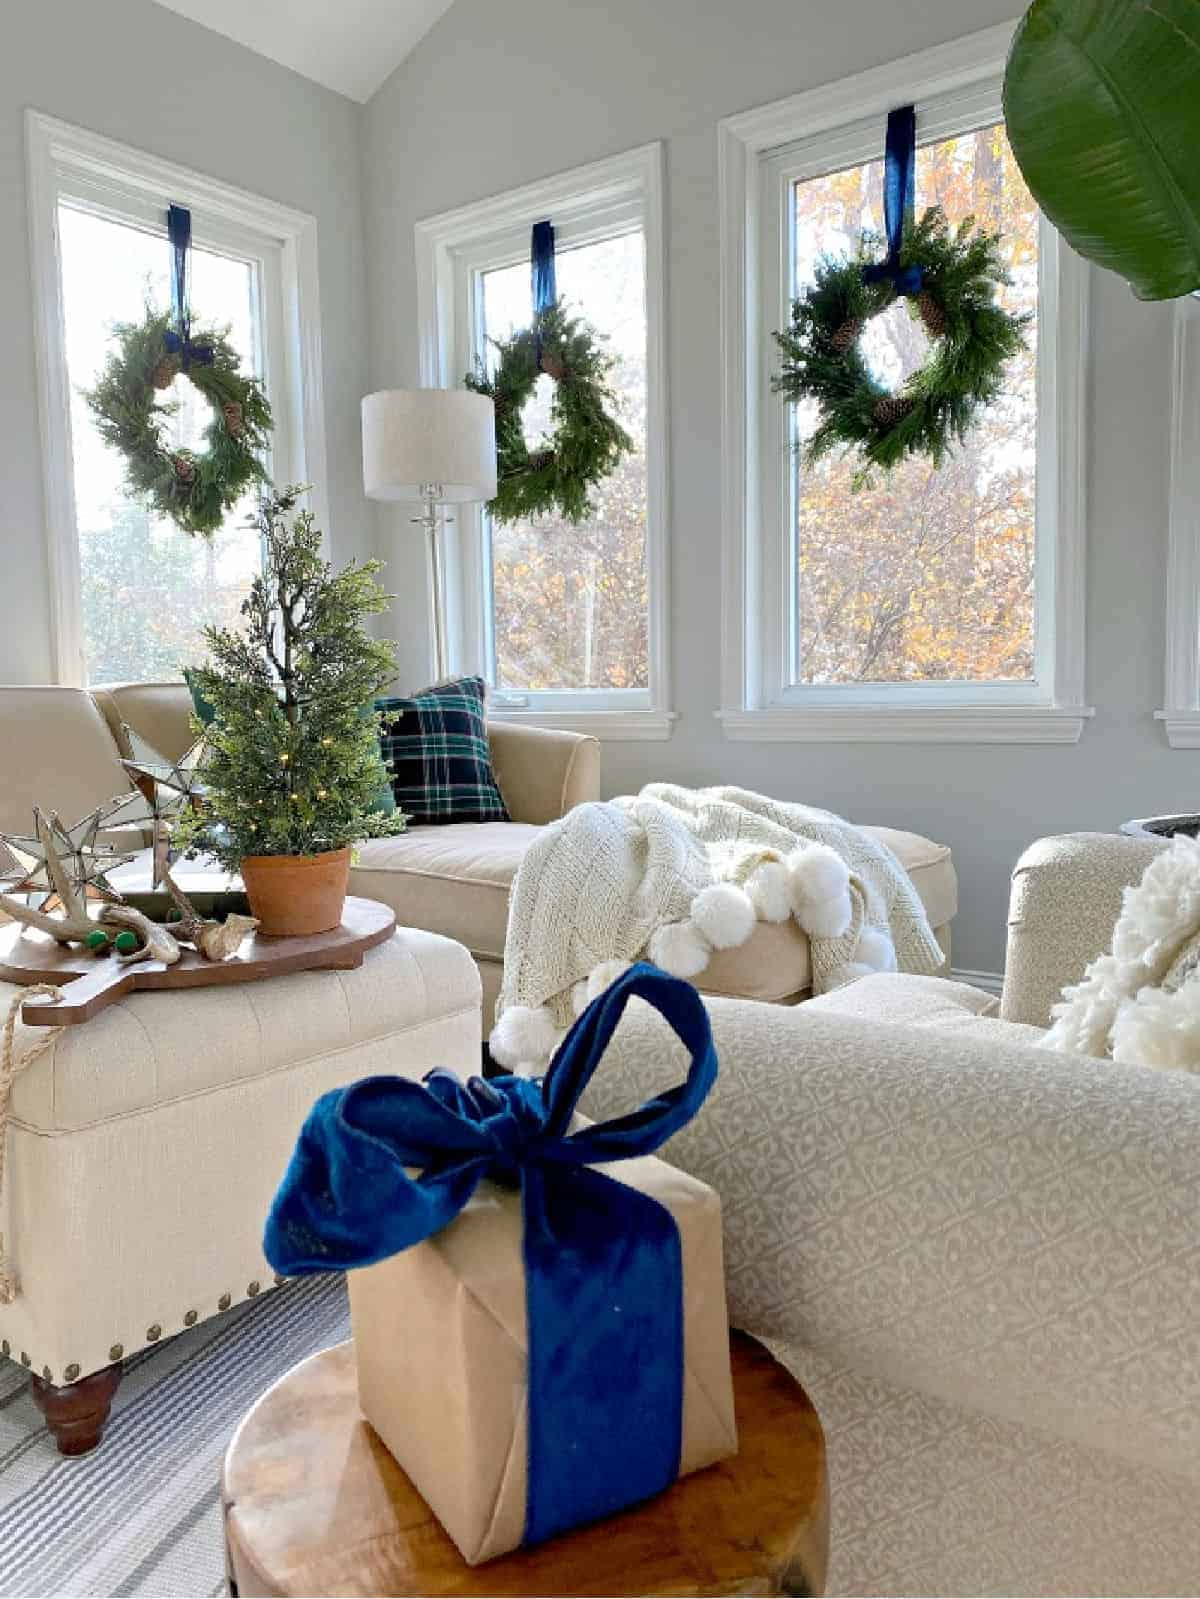 Christmas wreaths hanging in windows with blue velvet ribbon